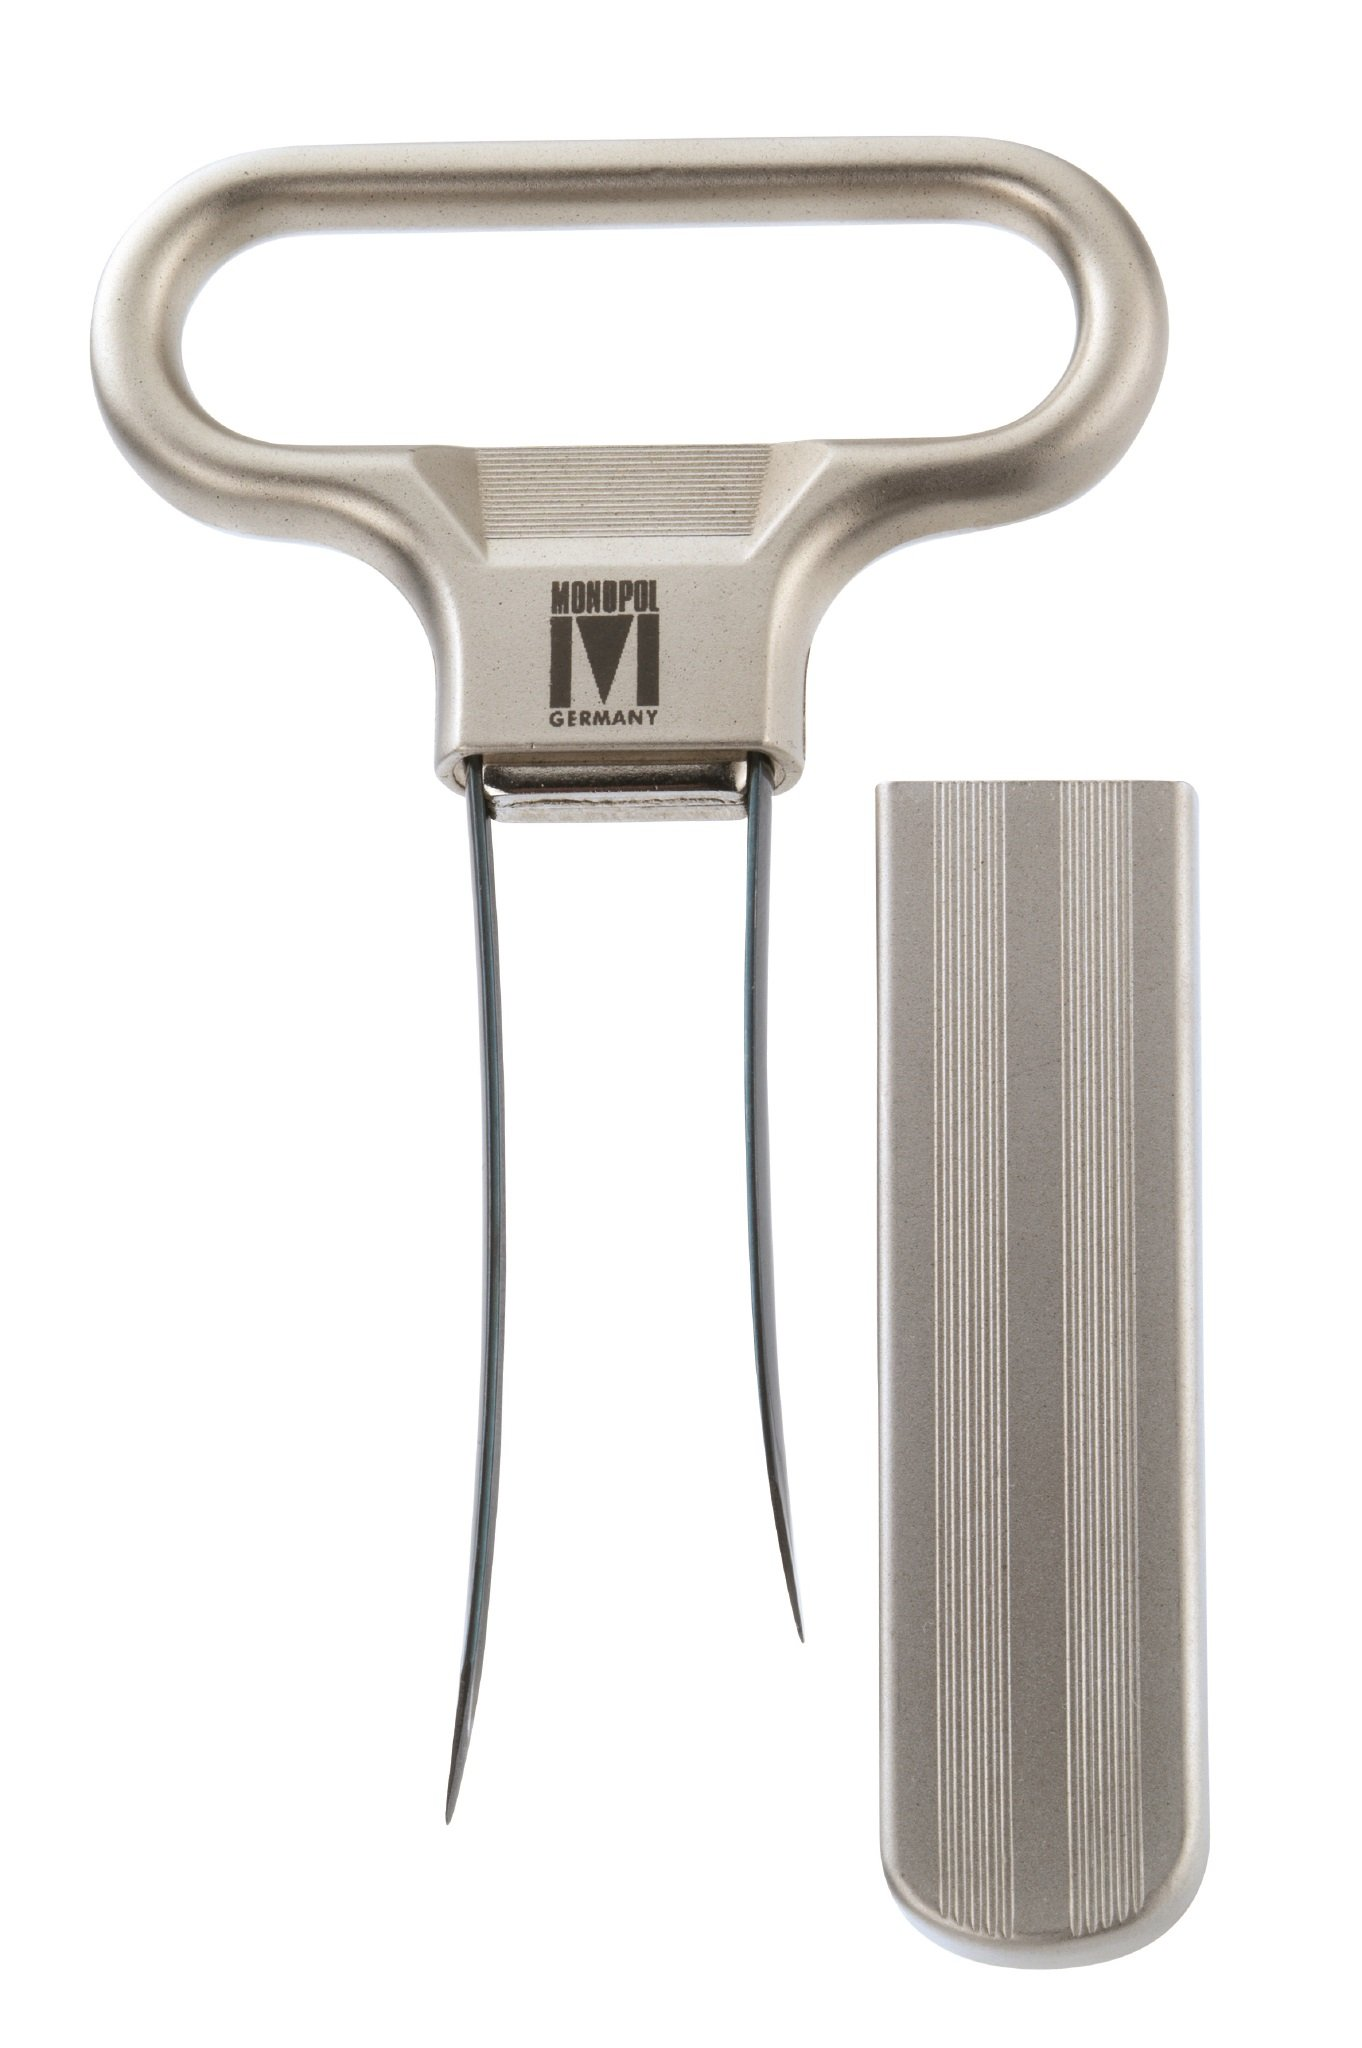 Monopol Westmark Germany Steel Two-Prong Cork Puller with Cover (Silver Satin) by MONOPOL Germany